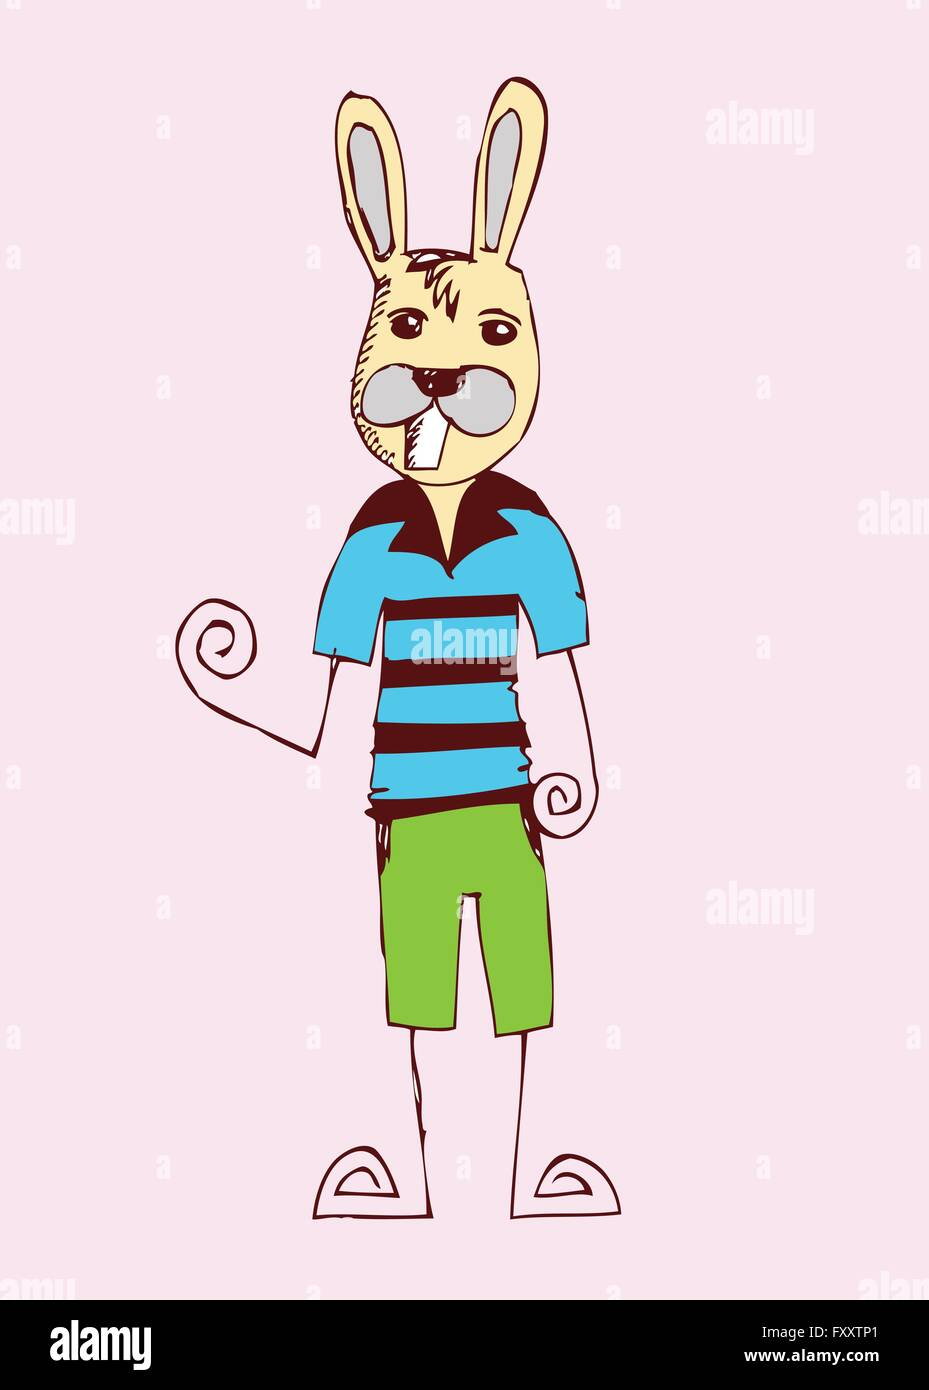 cartoon animals collection  in Jaidee Family Style - Stock Image